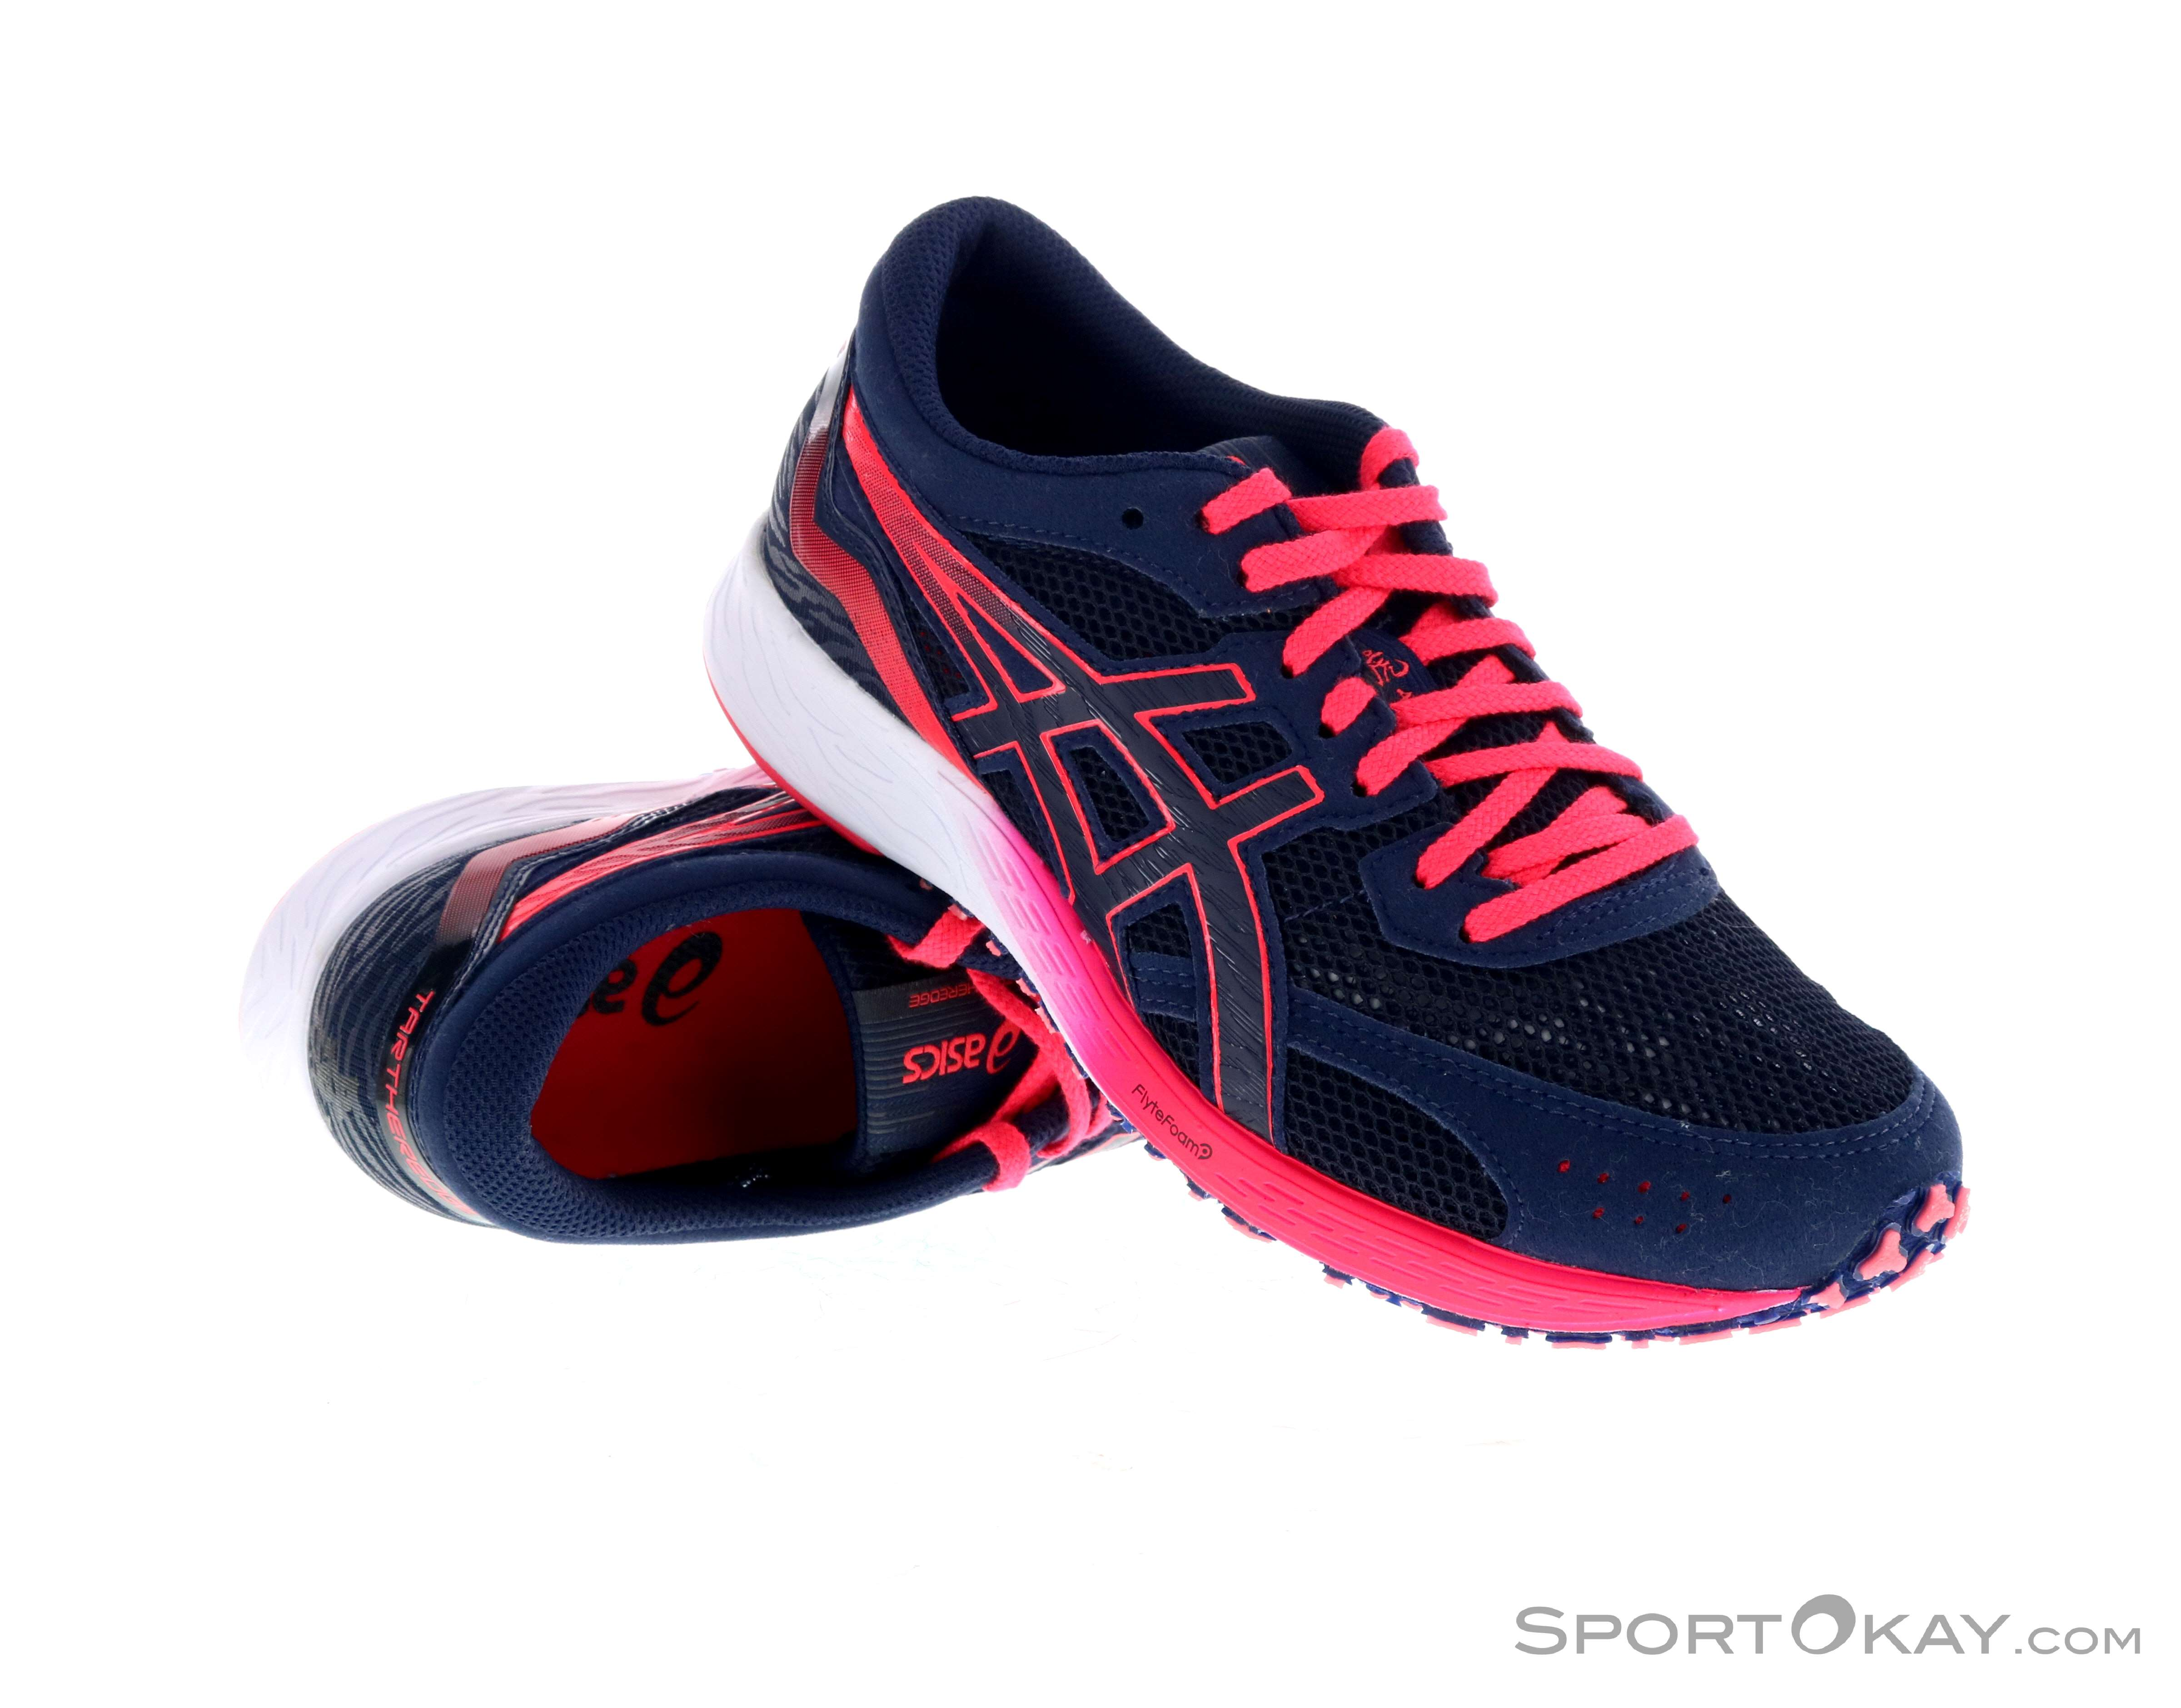 Asics Asics Tartheredge Womens Running Shoes